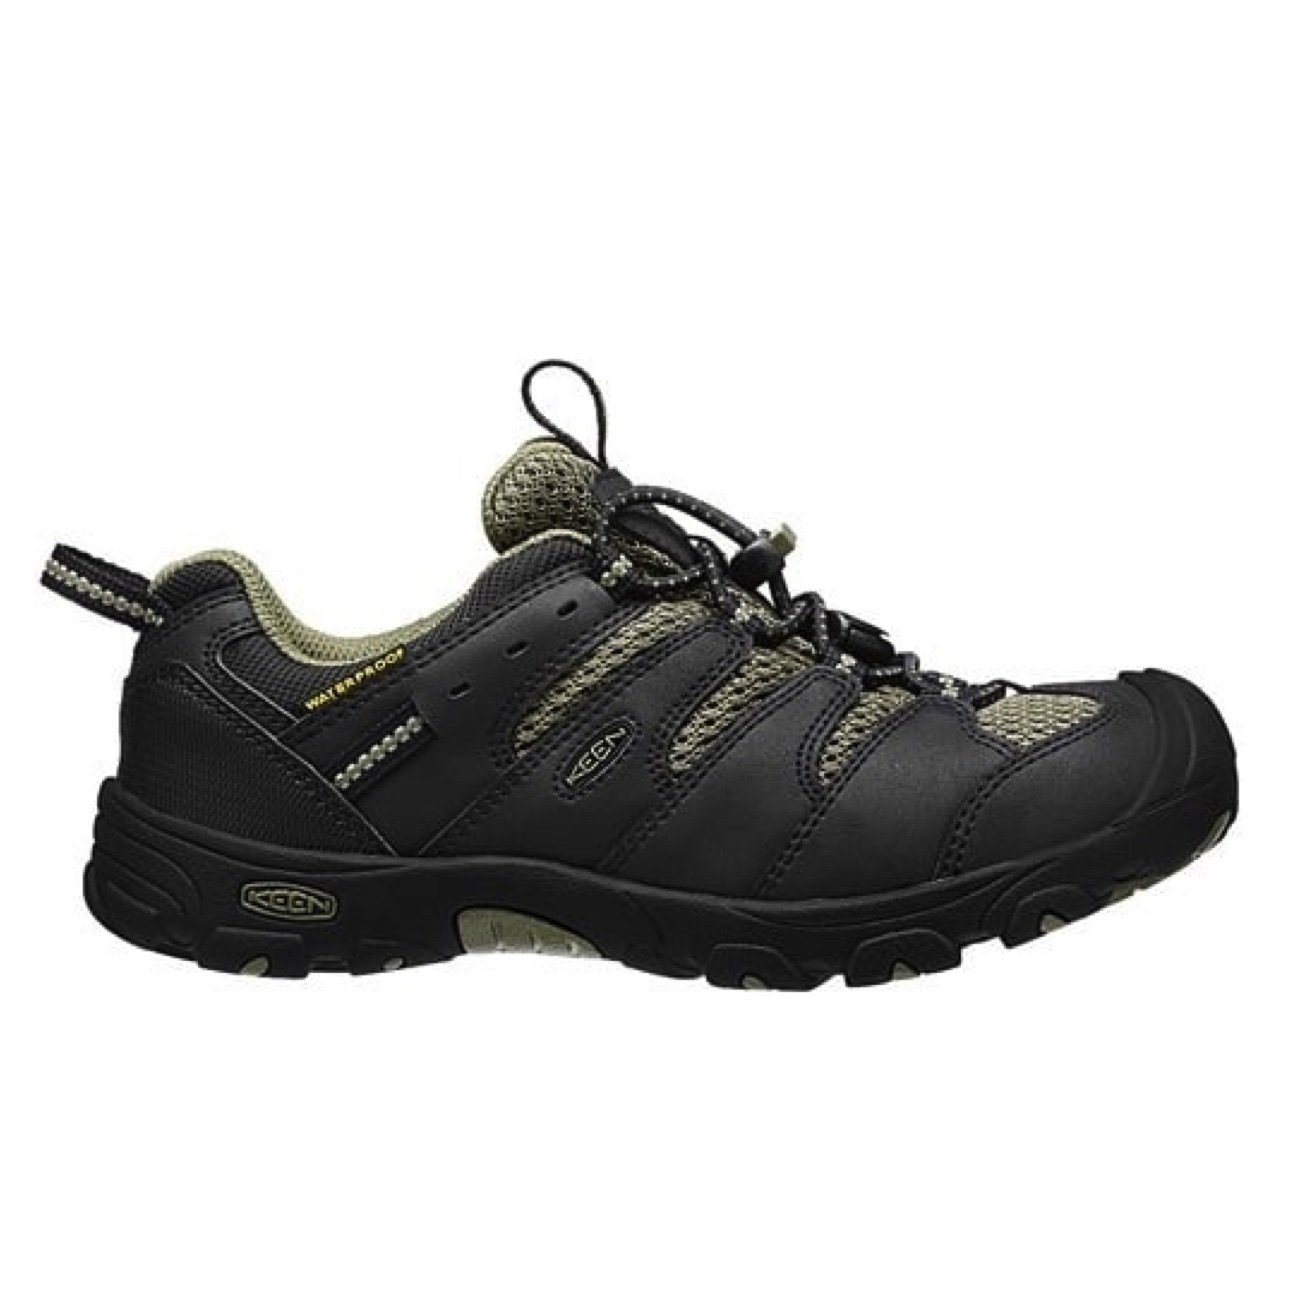 Keen Kids, Koven Low WP, CHILDREN, Medium Fit, Waterproof, Leather/ Mesh Upper Kids Footwear Keen Black/Burnt Olive 13